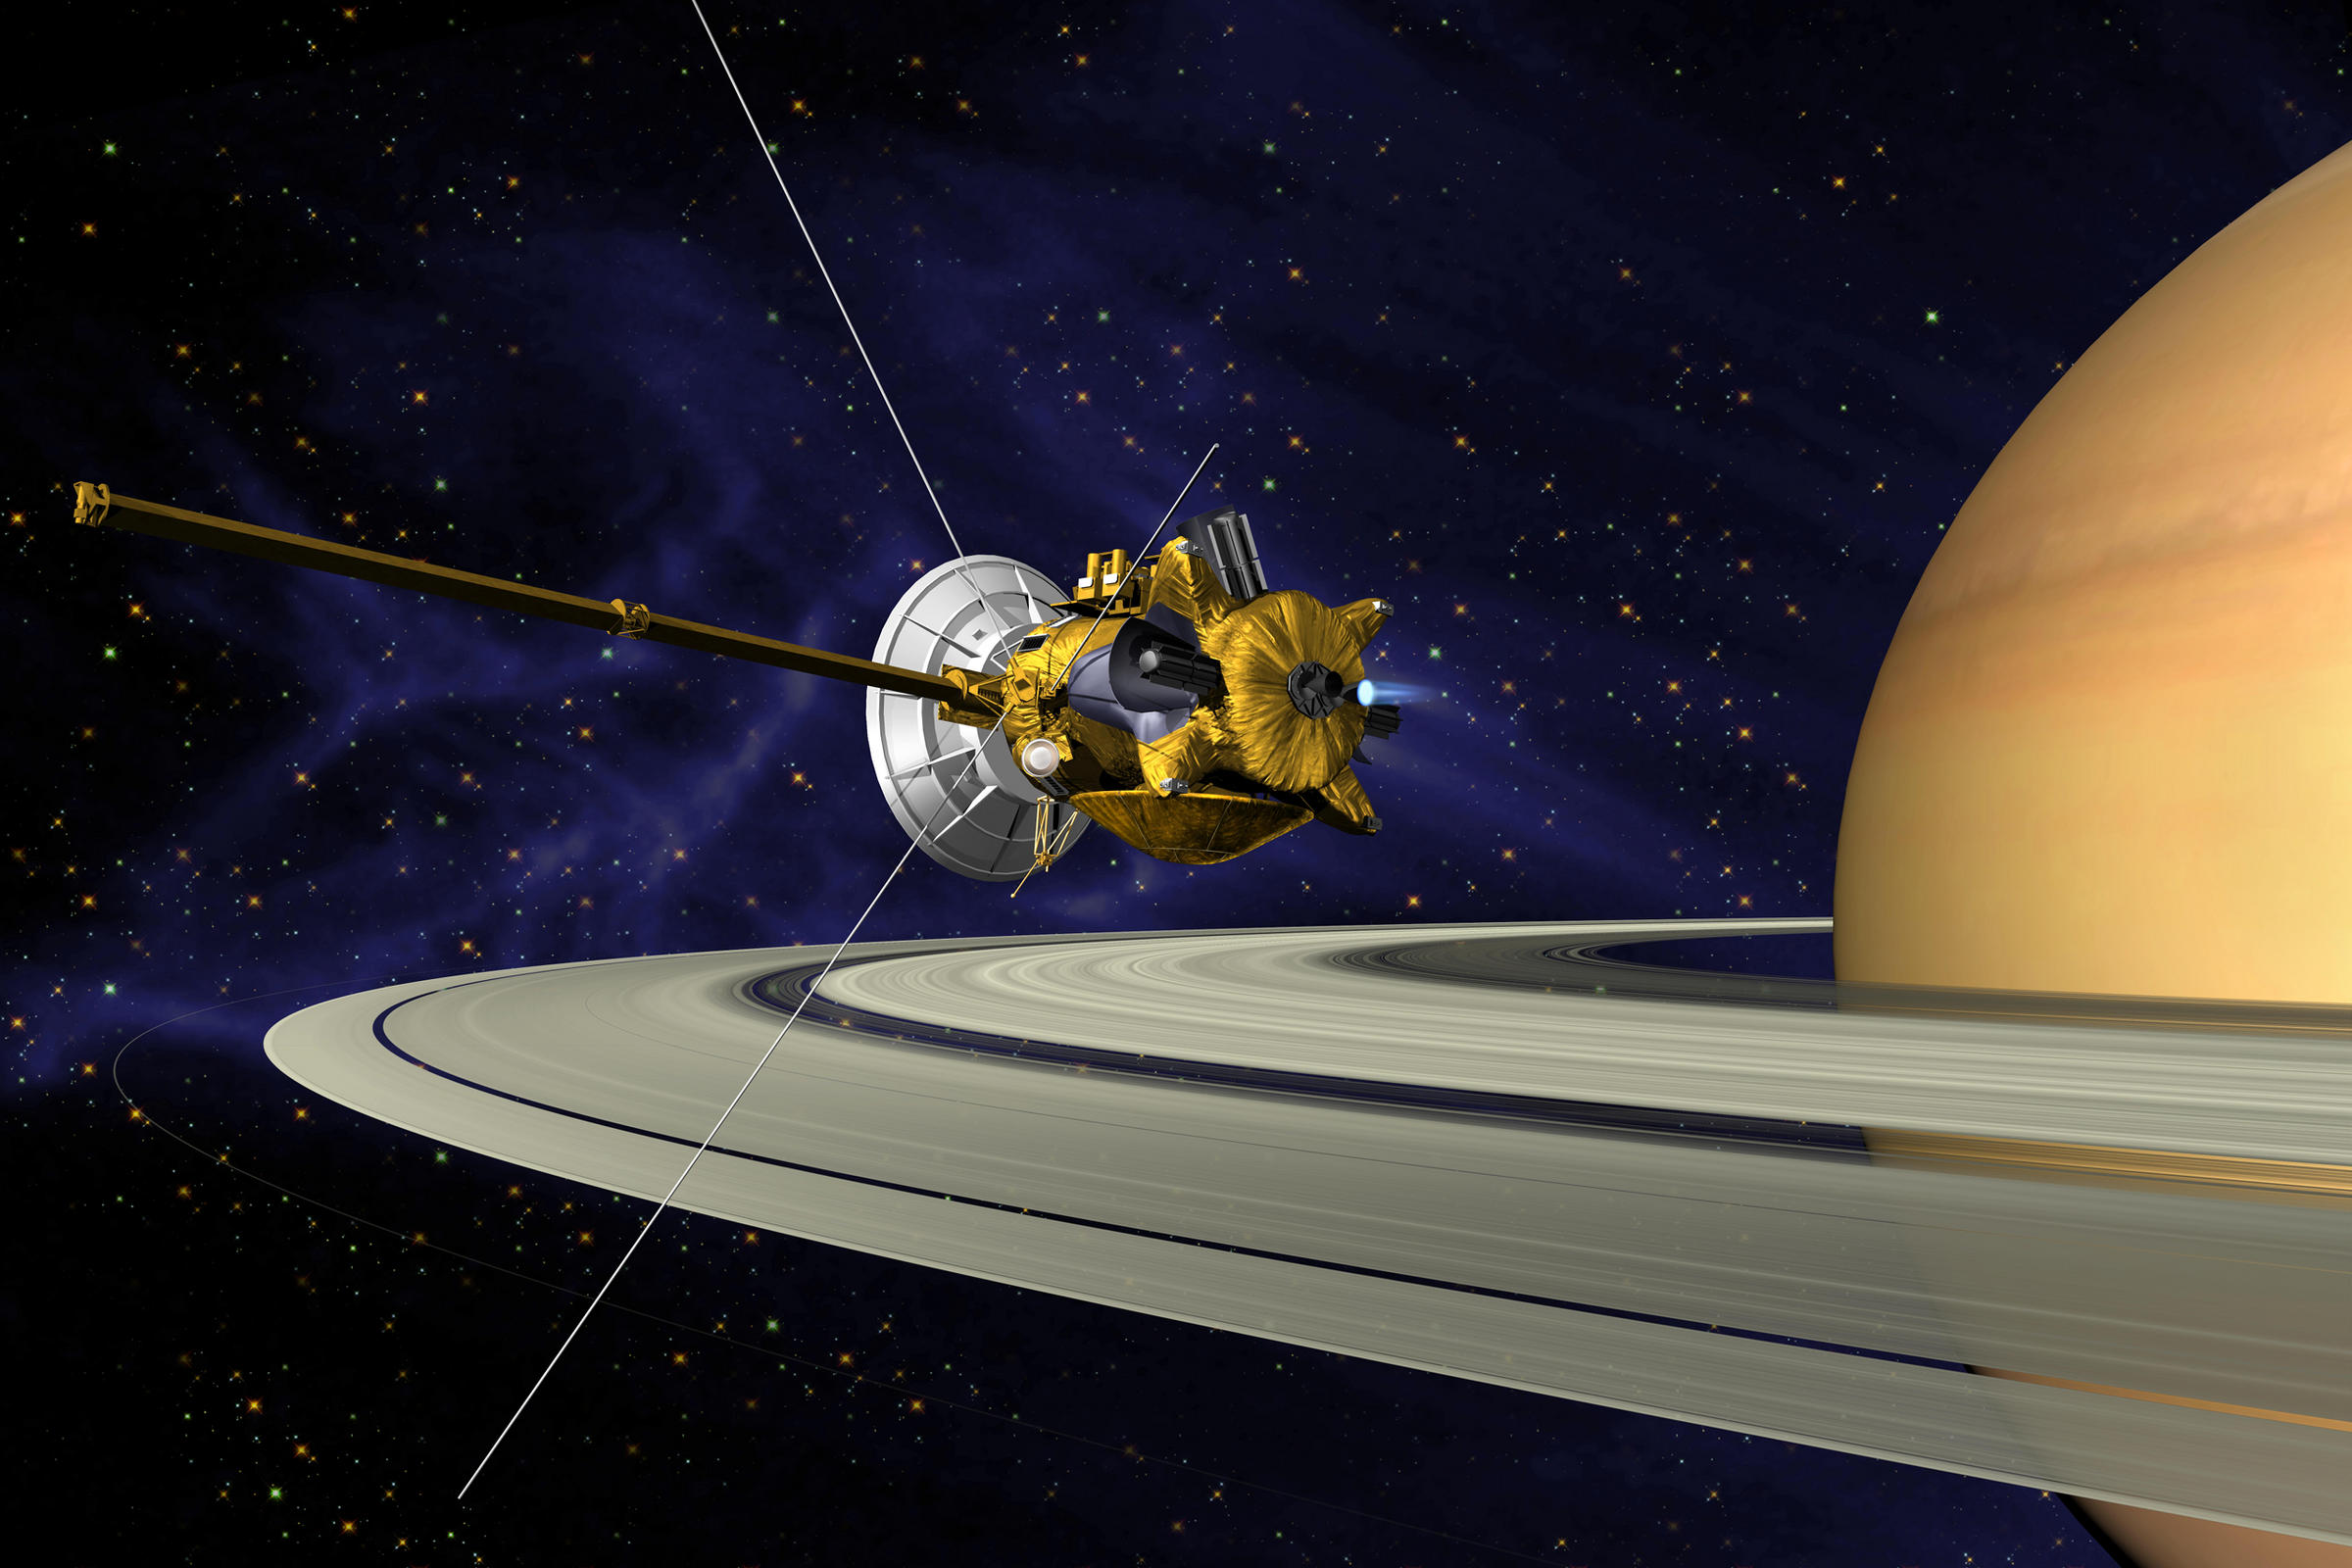 Mission accomplished: Saturn probe Cassini ends 20-year journey